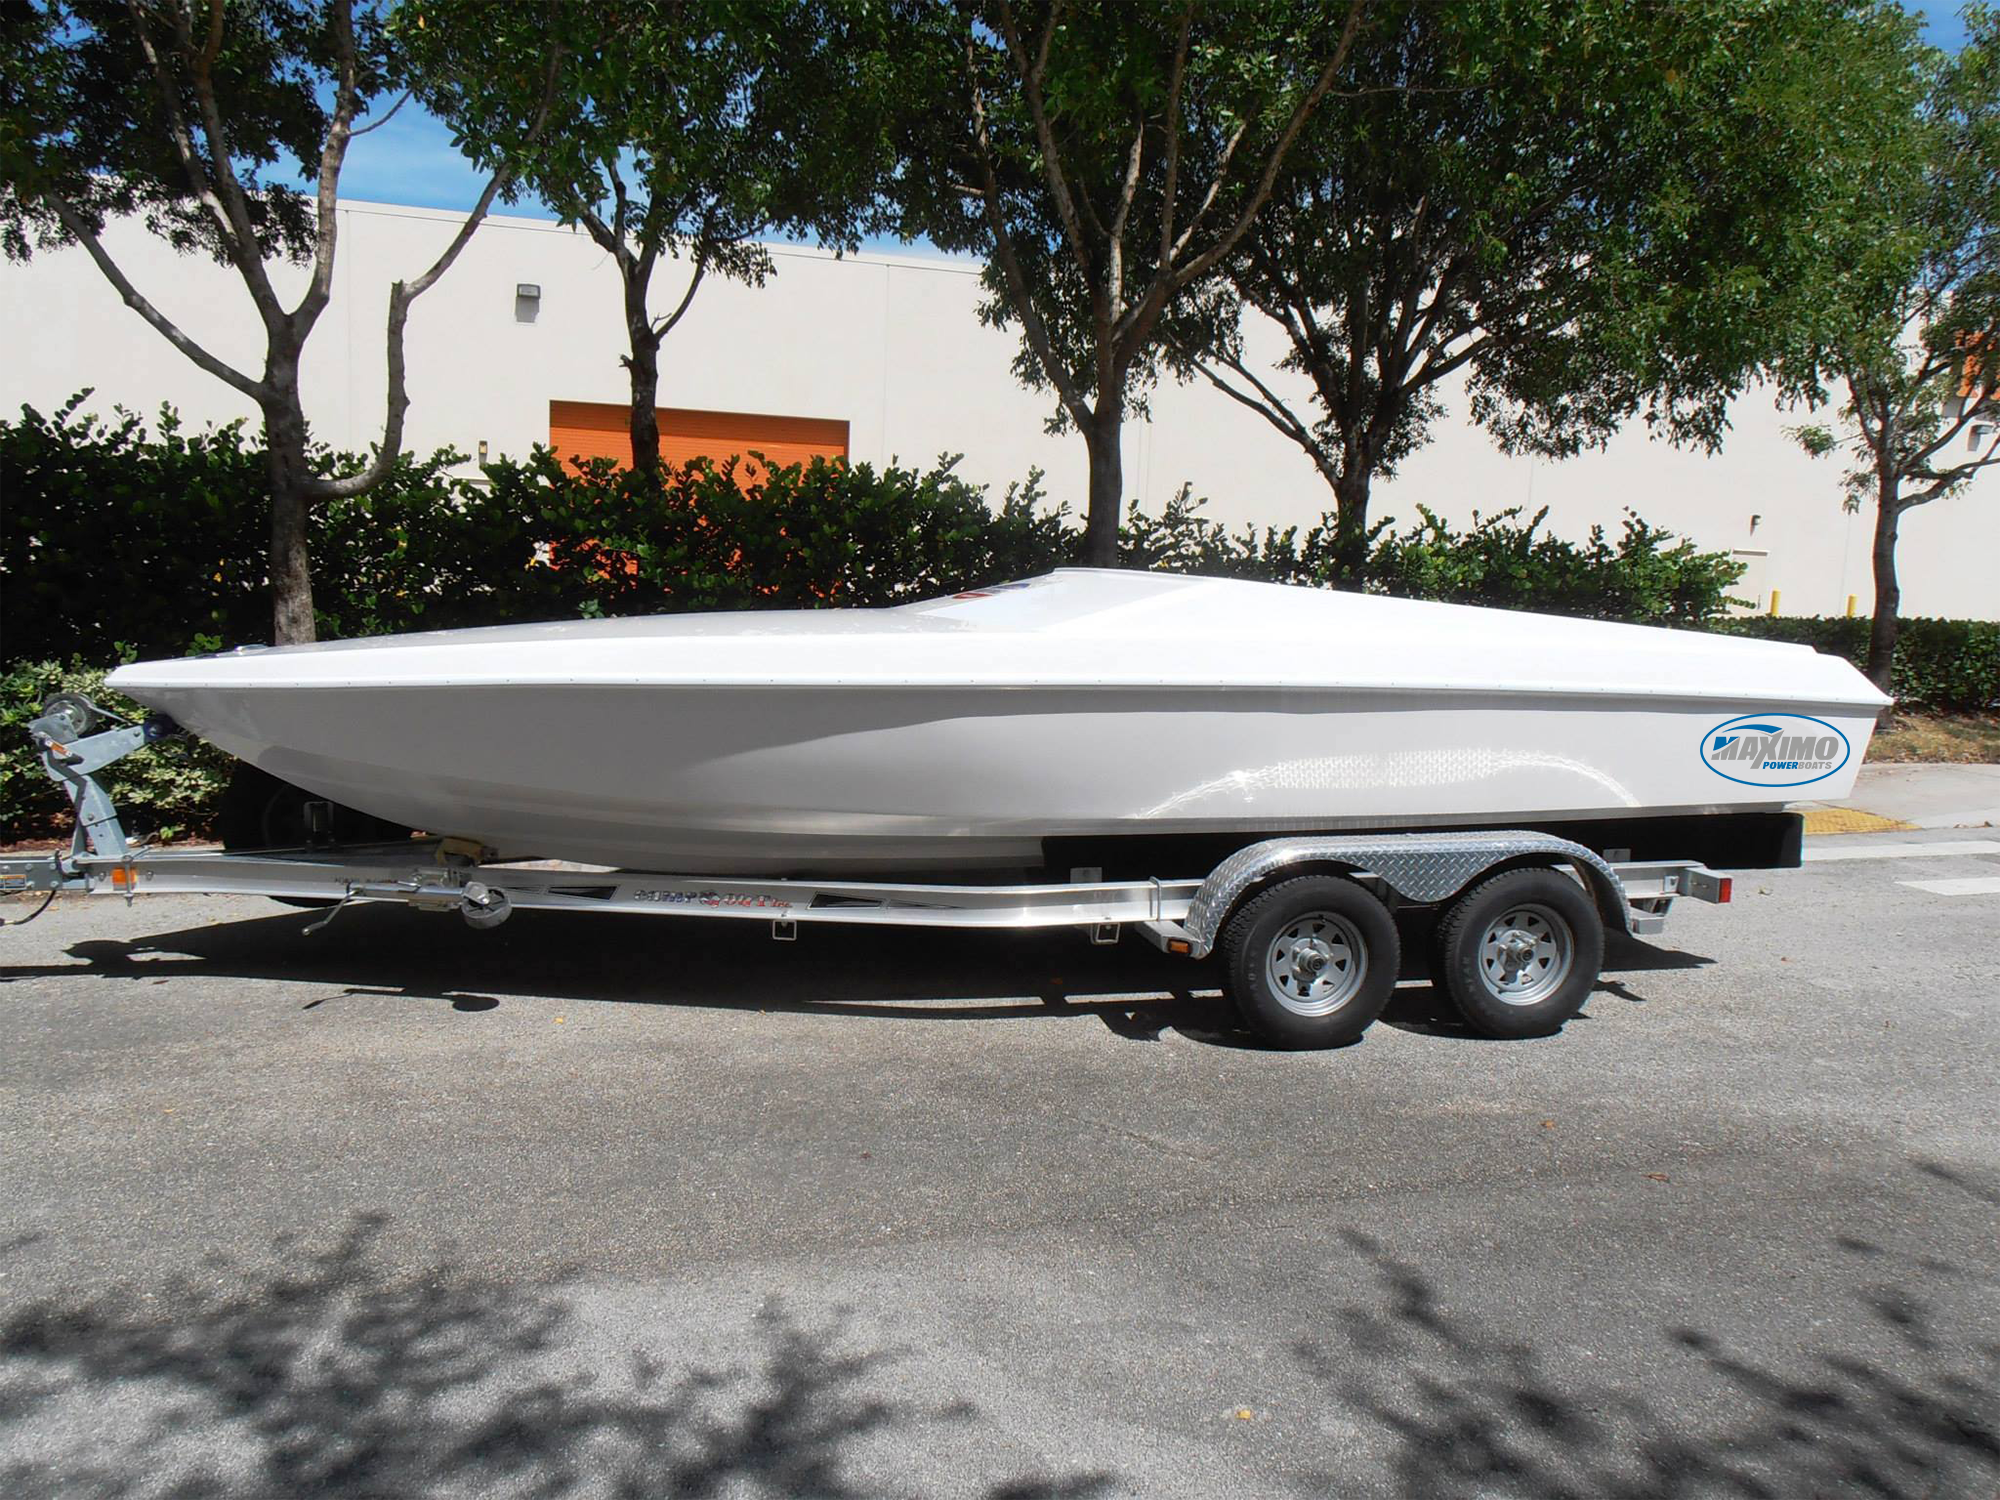 The Maximo Powerboats 21. A 200 or 225 HP outboard is perfect for this hull.